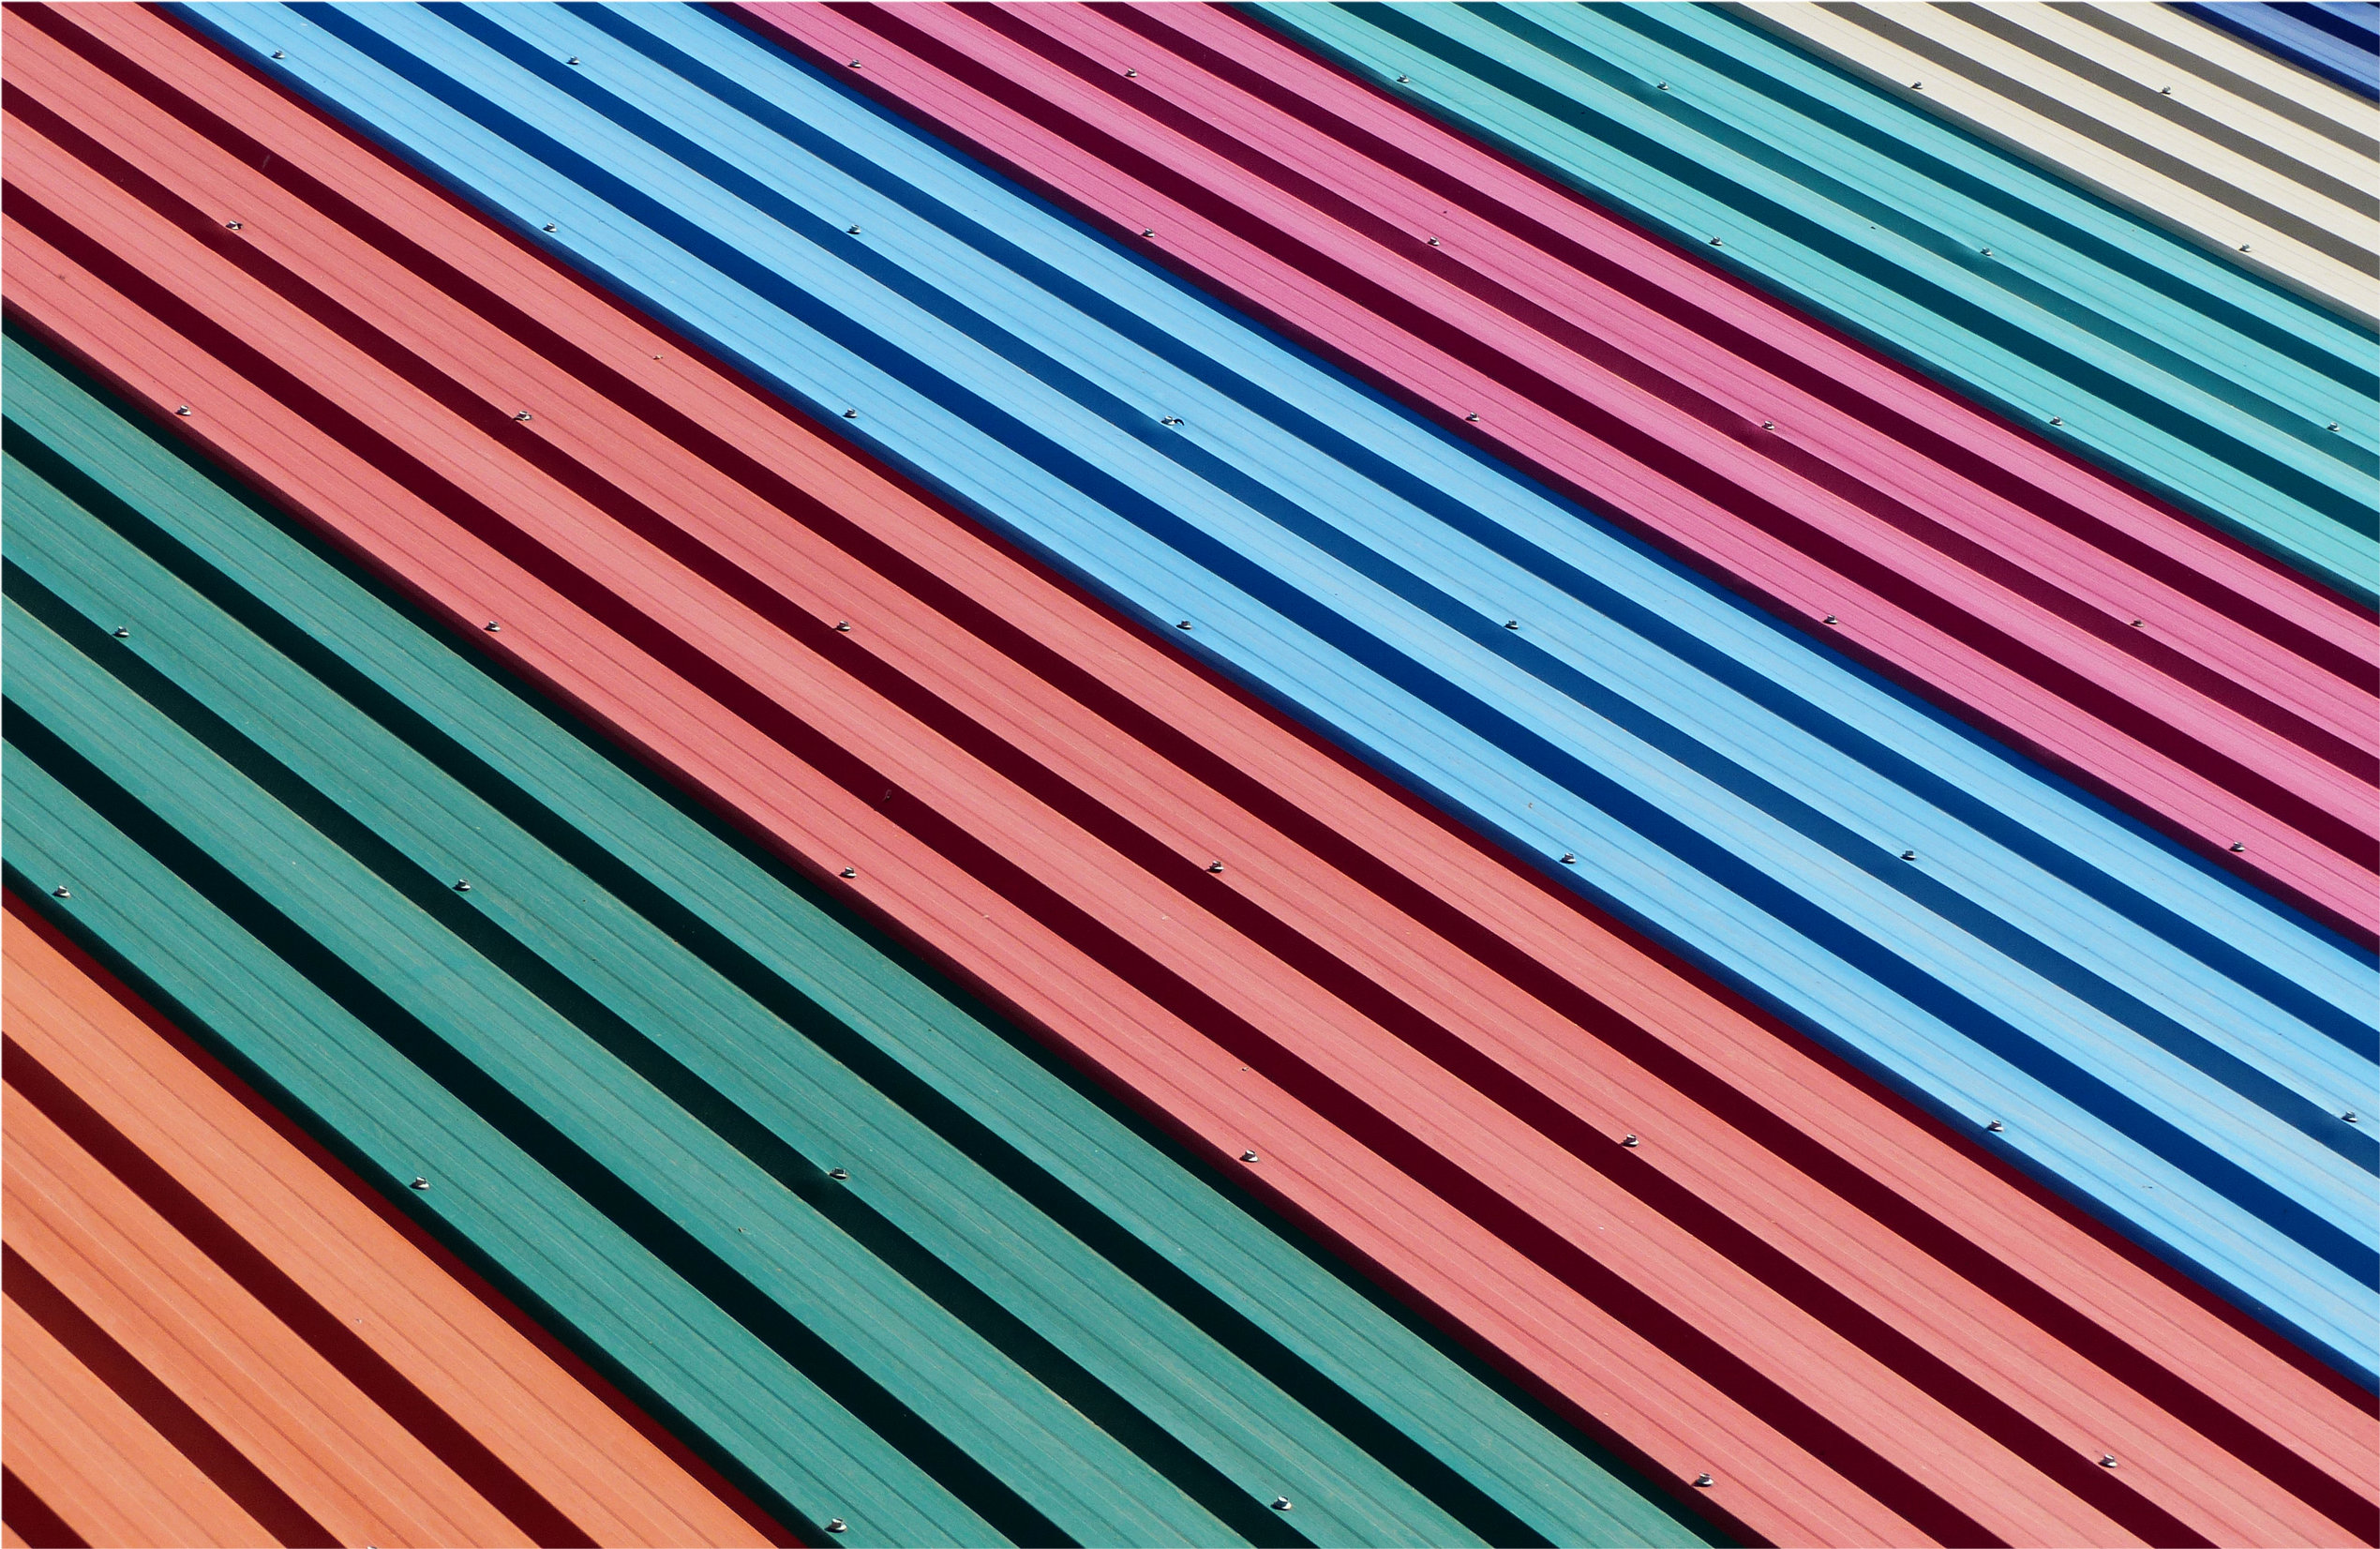 What are the top 6 benefits of a metal roofing?